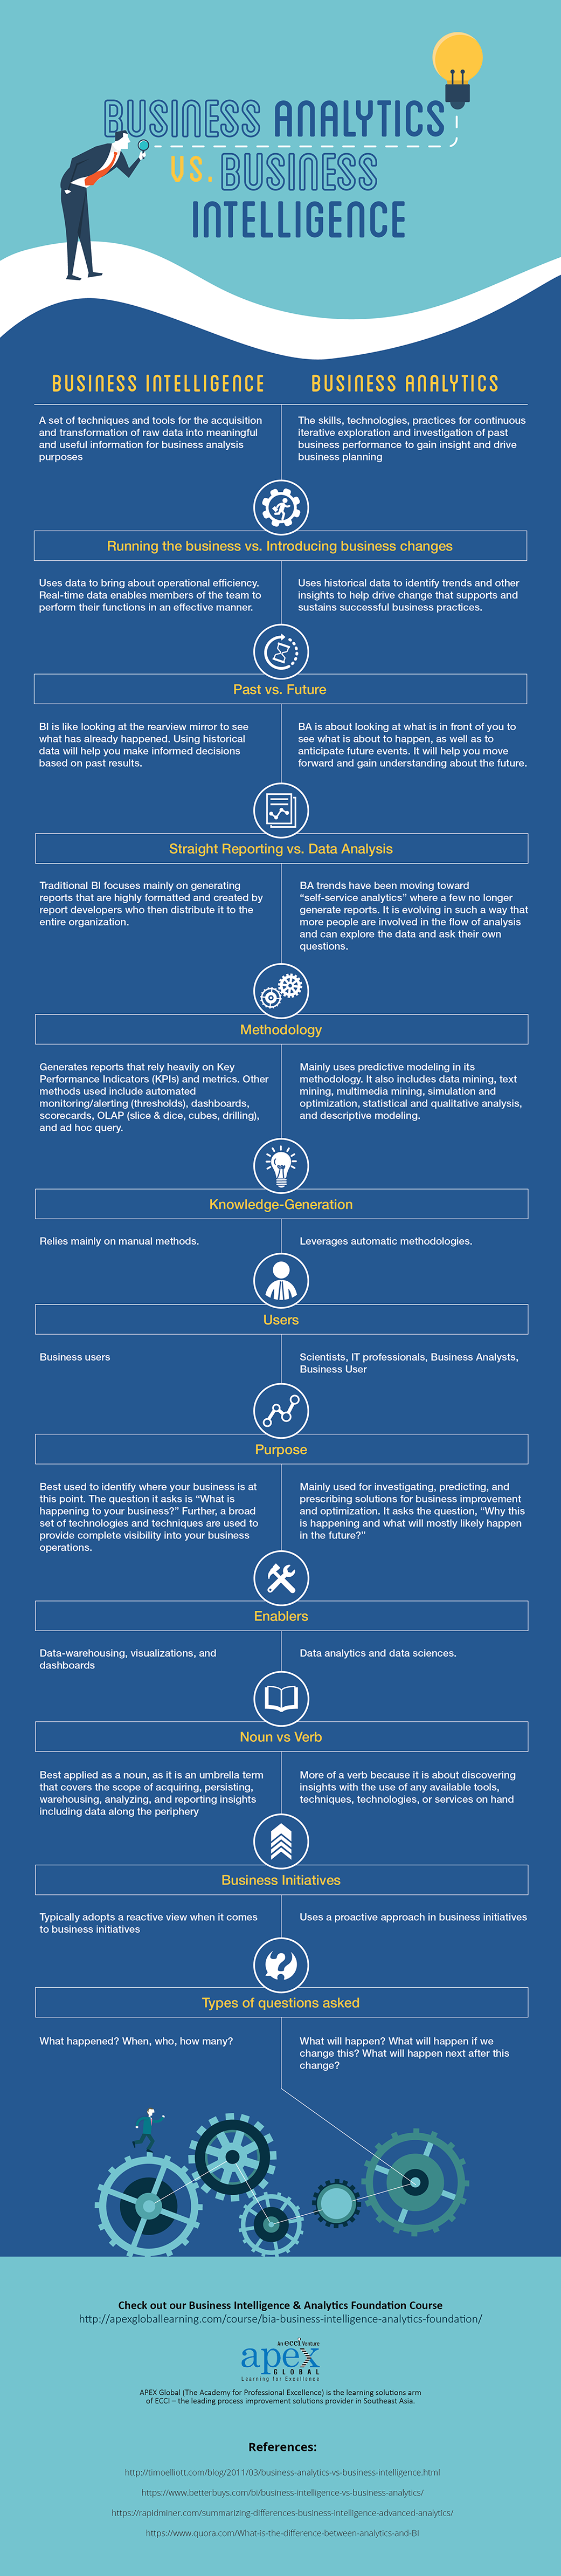 Business Analytics vs. Business Intelligence Infographic